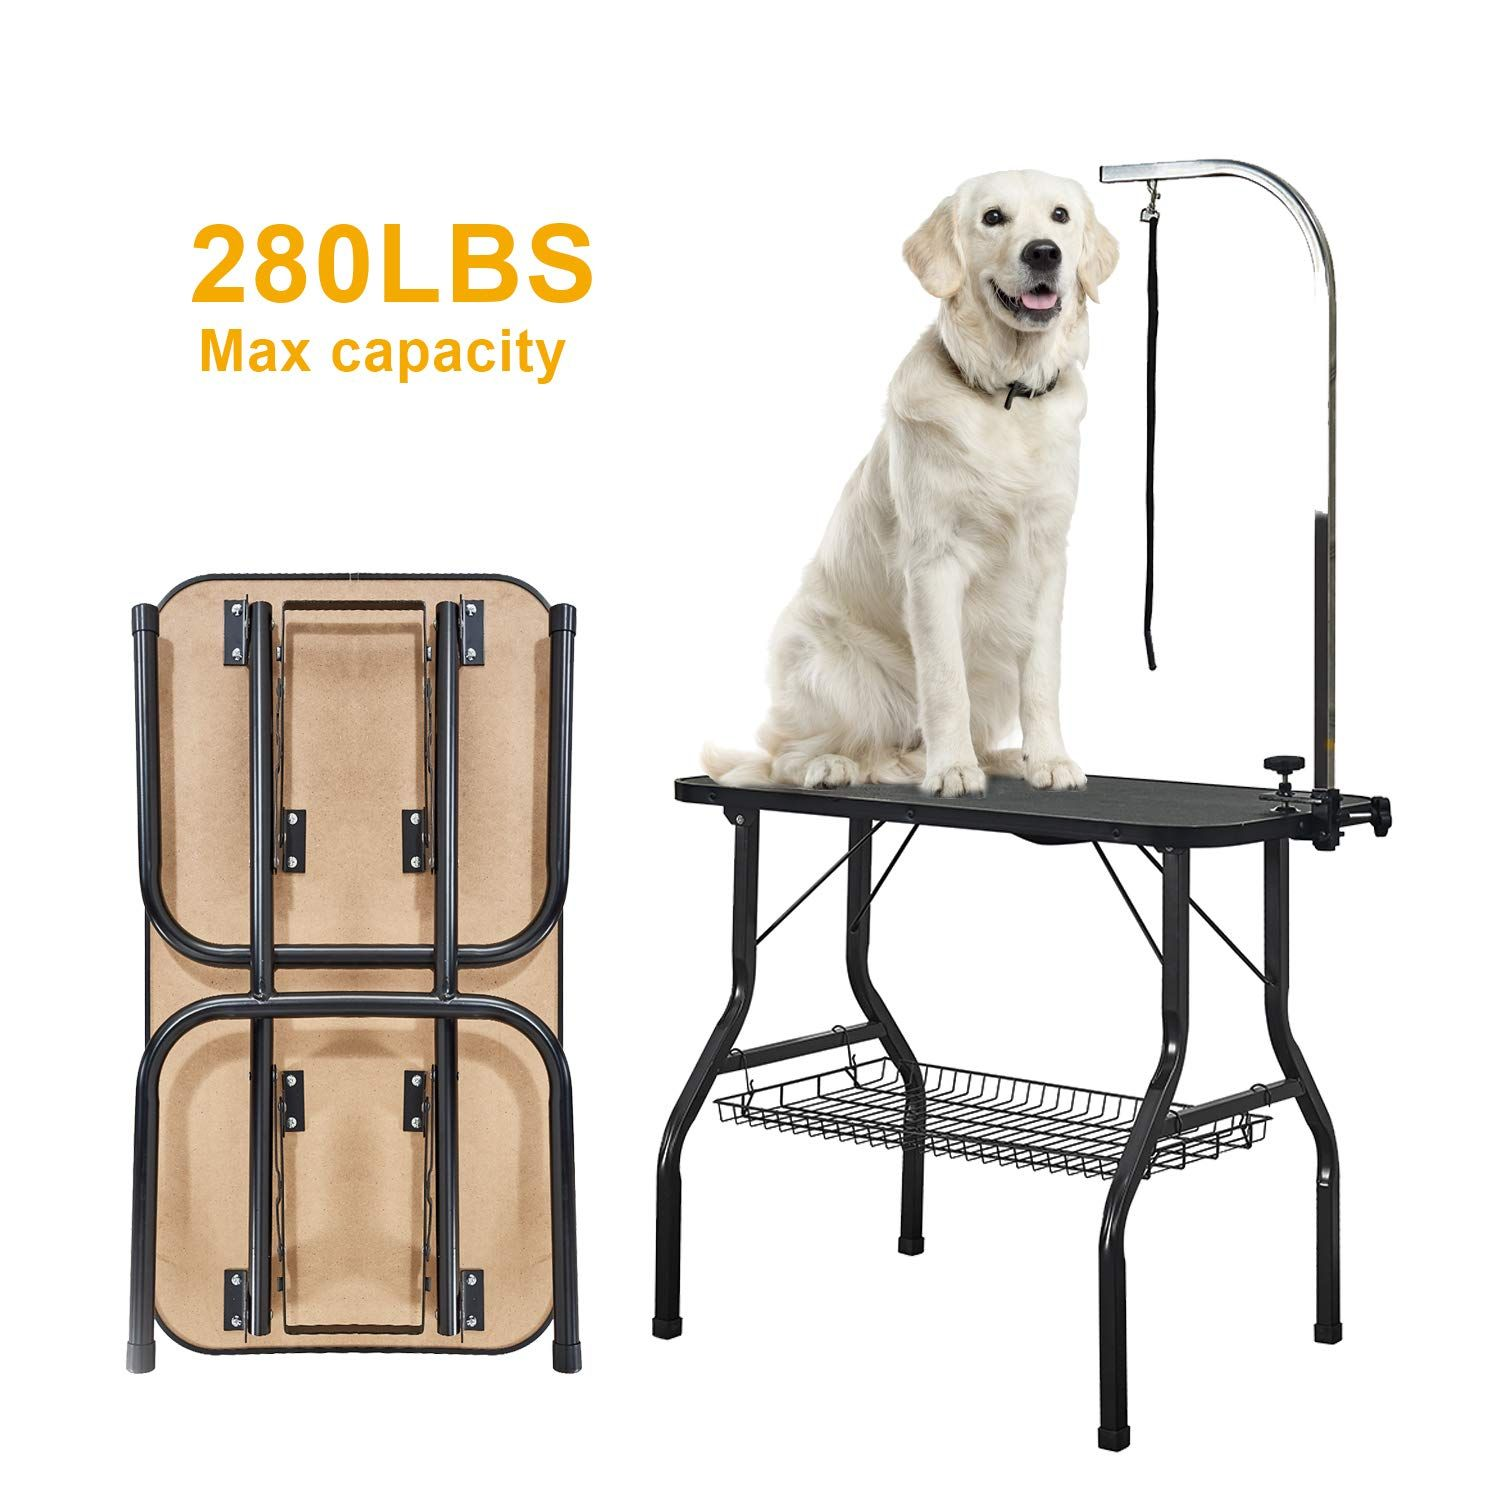 Vecela Pet Dog Grooming Table Small Size Heavy Duty 32 Foldable Portable With Adjustable Arm Clamp And Mesh Tray Be S Dog Grooming Dog Grooming Supplies Dogs